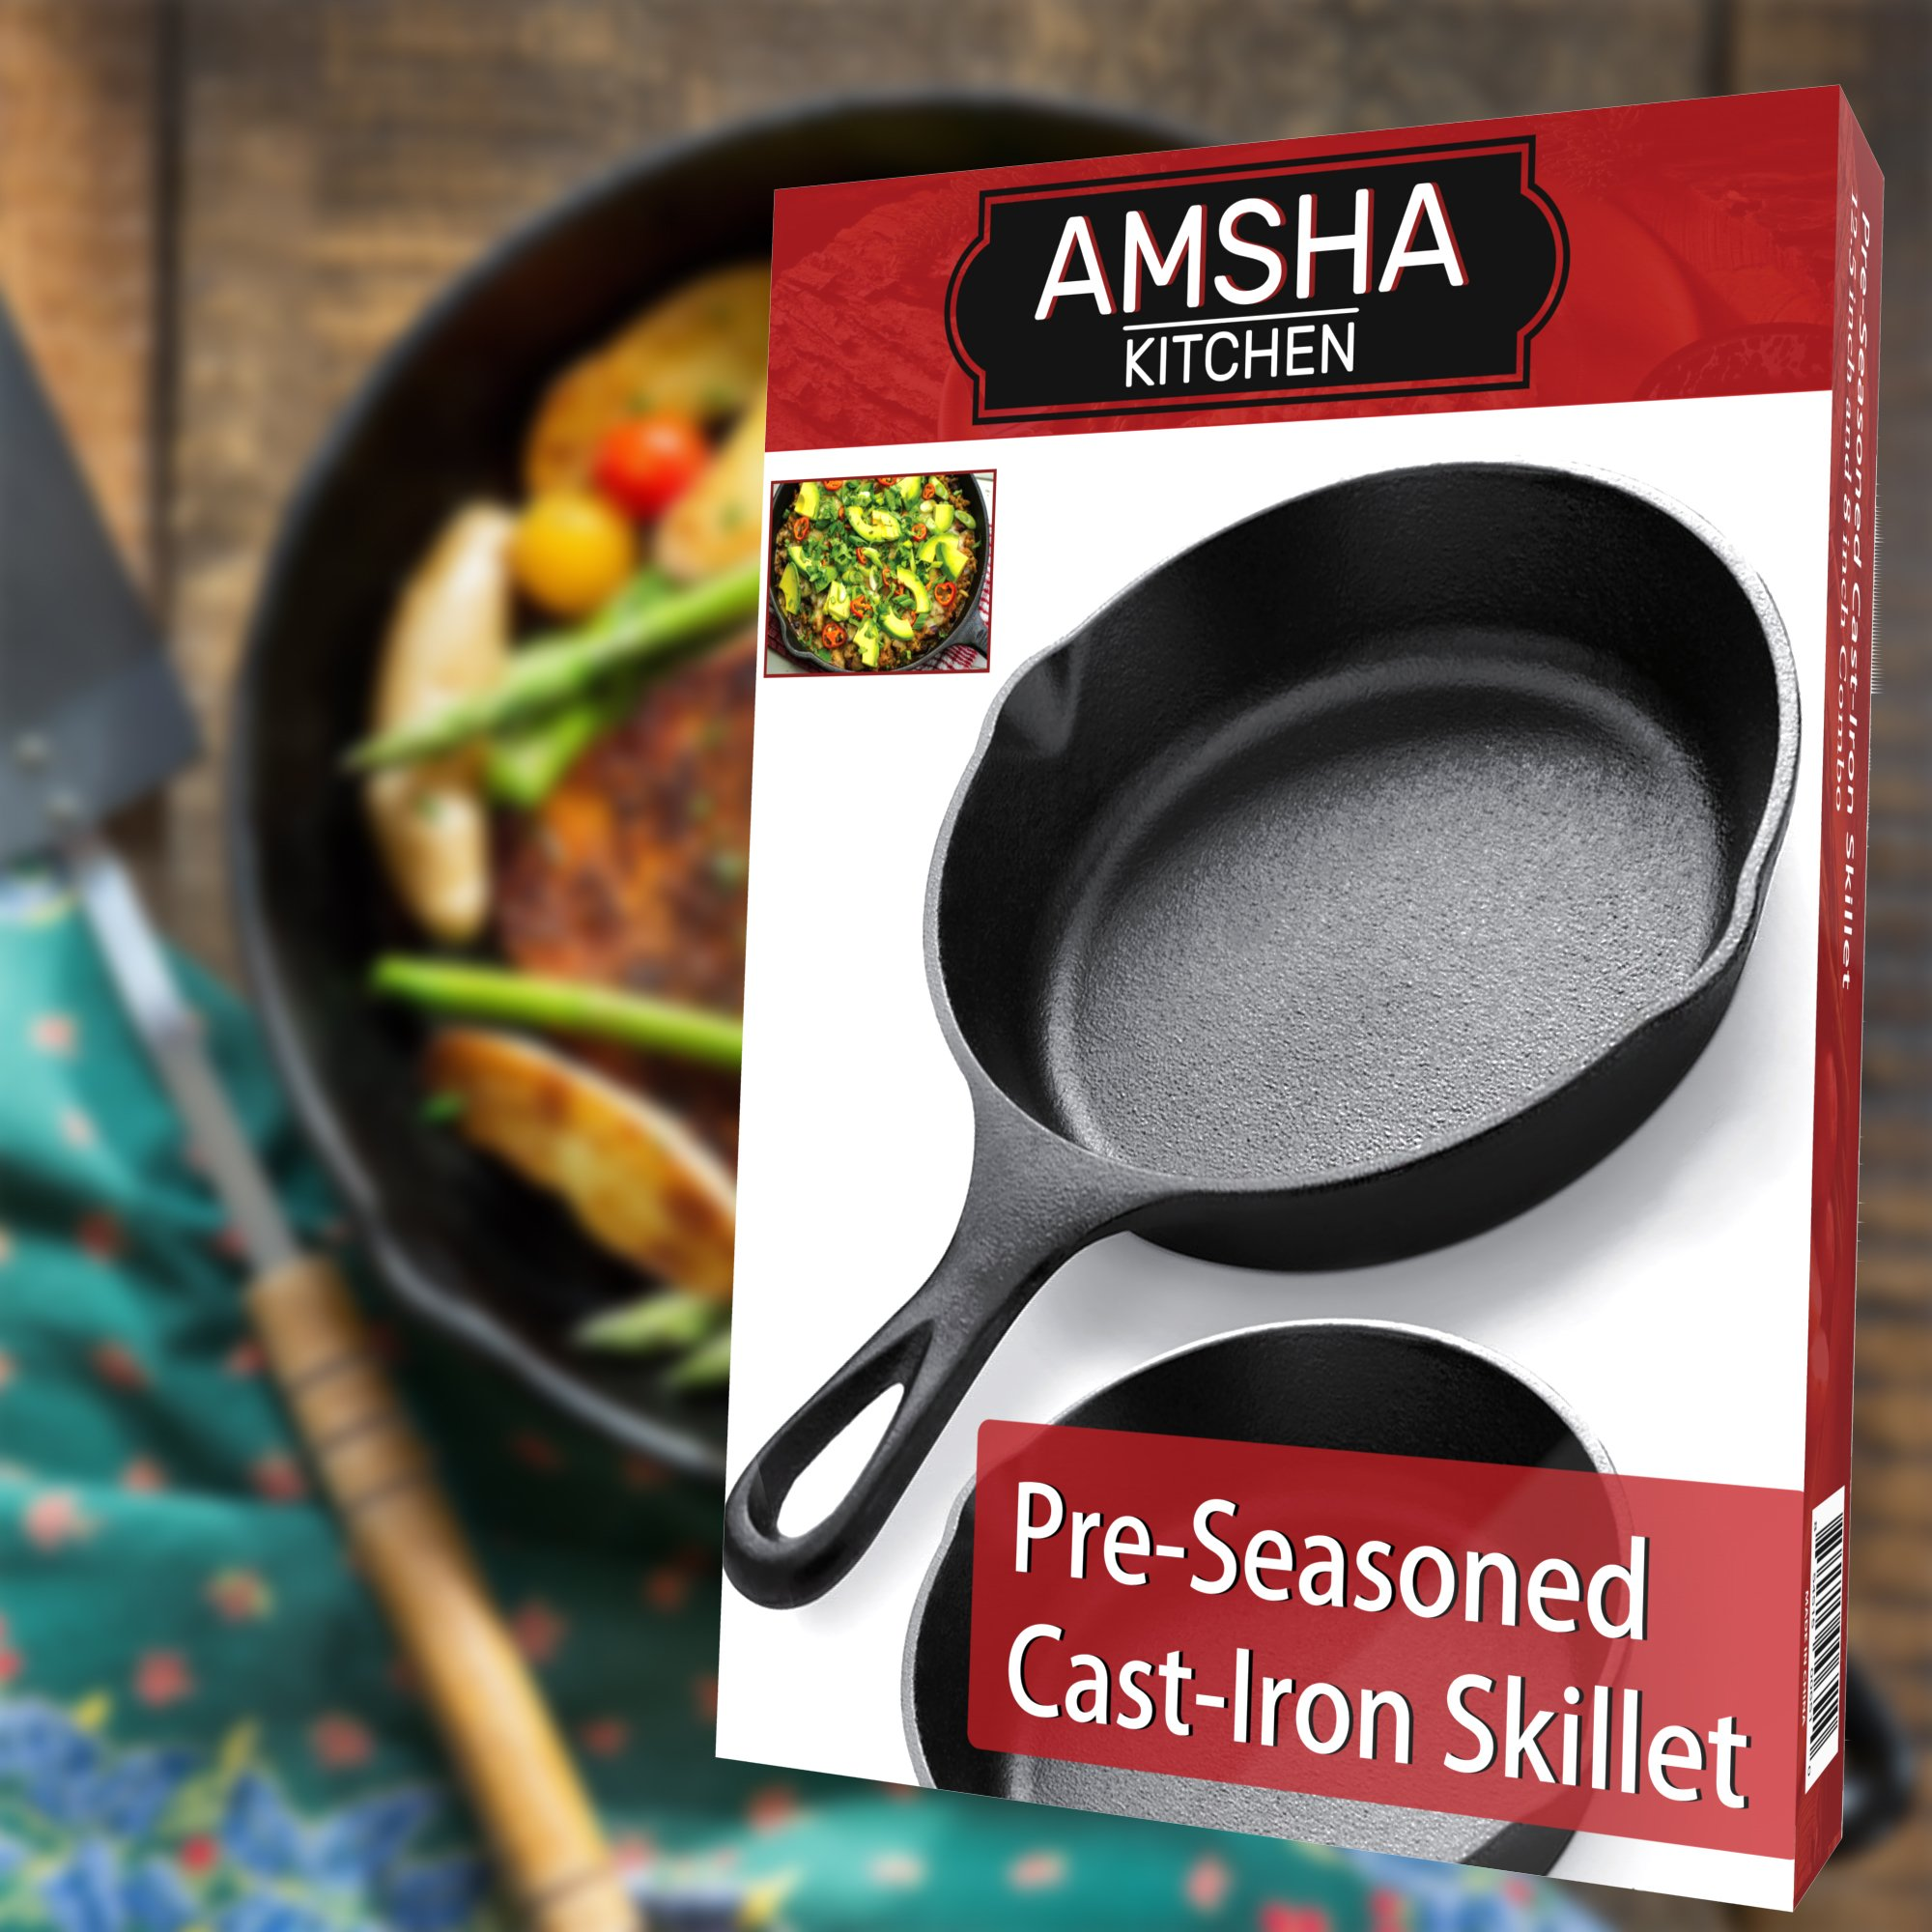 Pre-Seasoned Cast Iron Skillet 2 Piece Set (12.5 inch & 8 inch Pans) Best Heavy Duty Professional Restaurant Chef Quality Pre Seasoned Pan Cookware Set - Great For Frying, Saute, Cooking Pizza & More by Amsha Kitchen (Image #9)